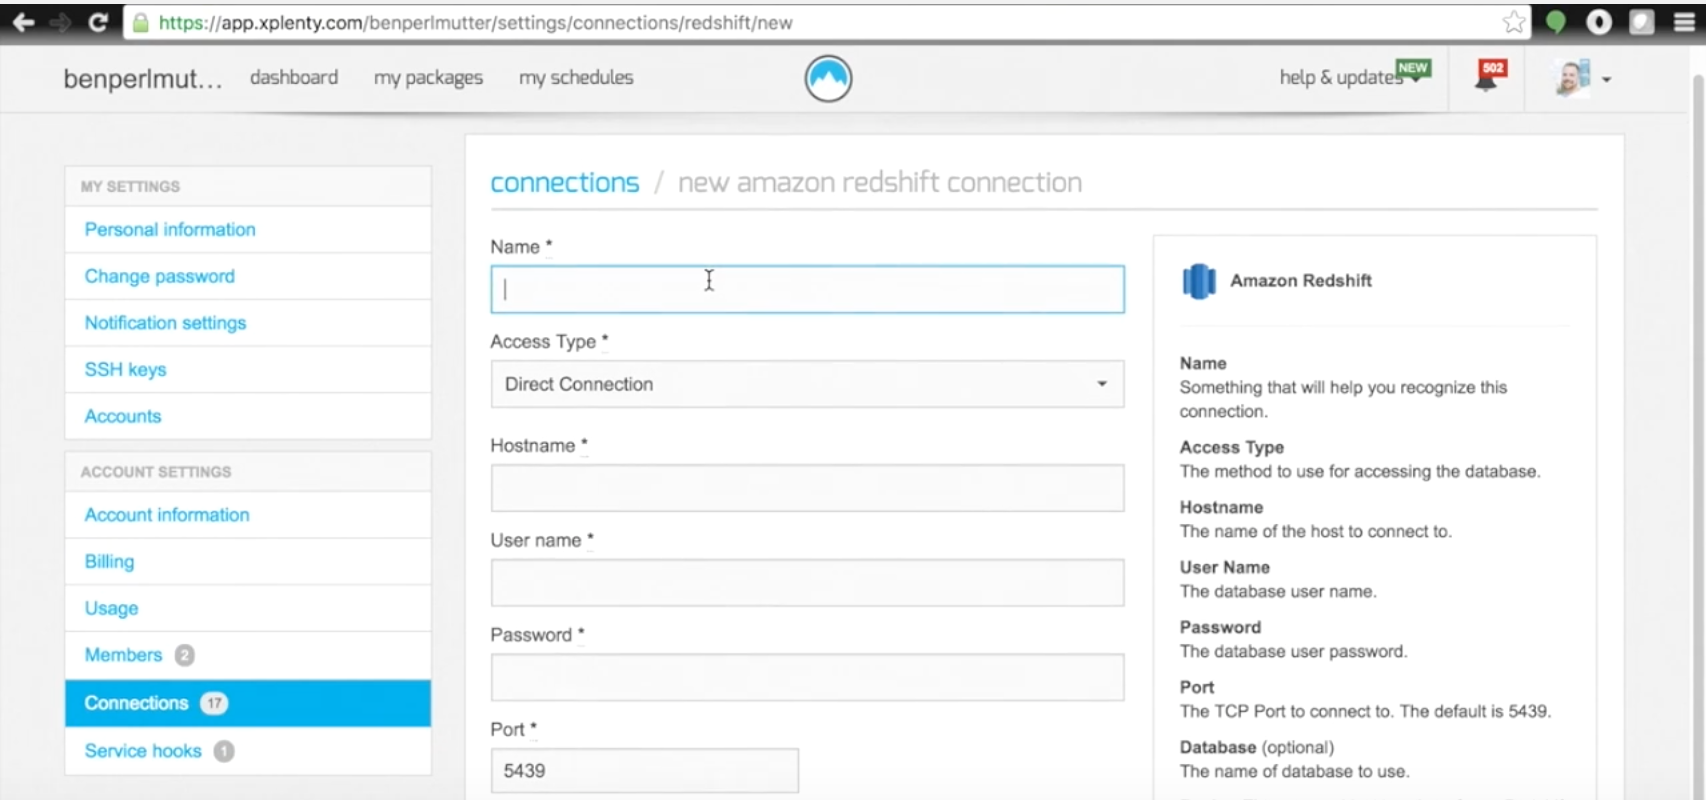 Enter details for new data connections